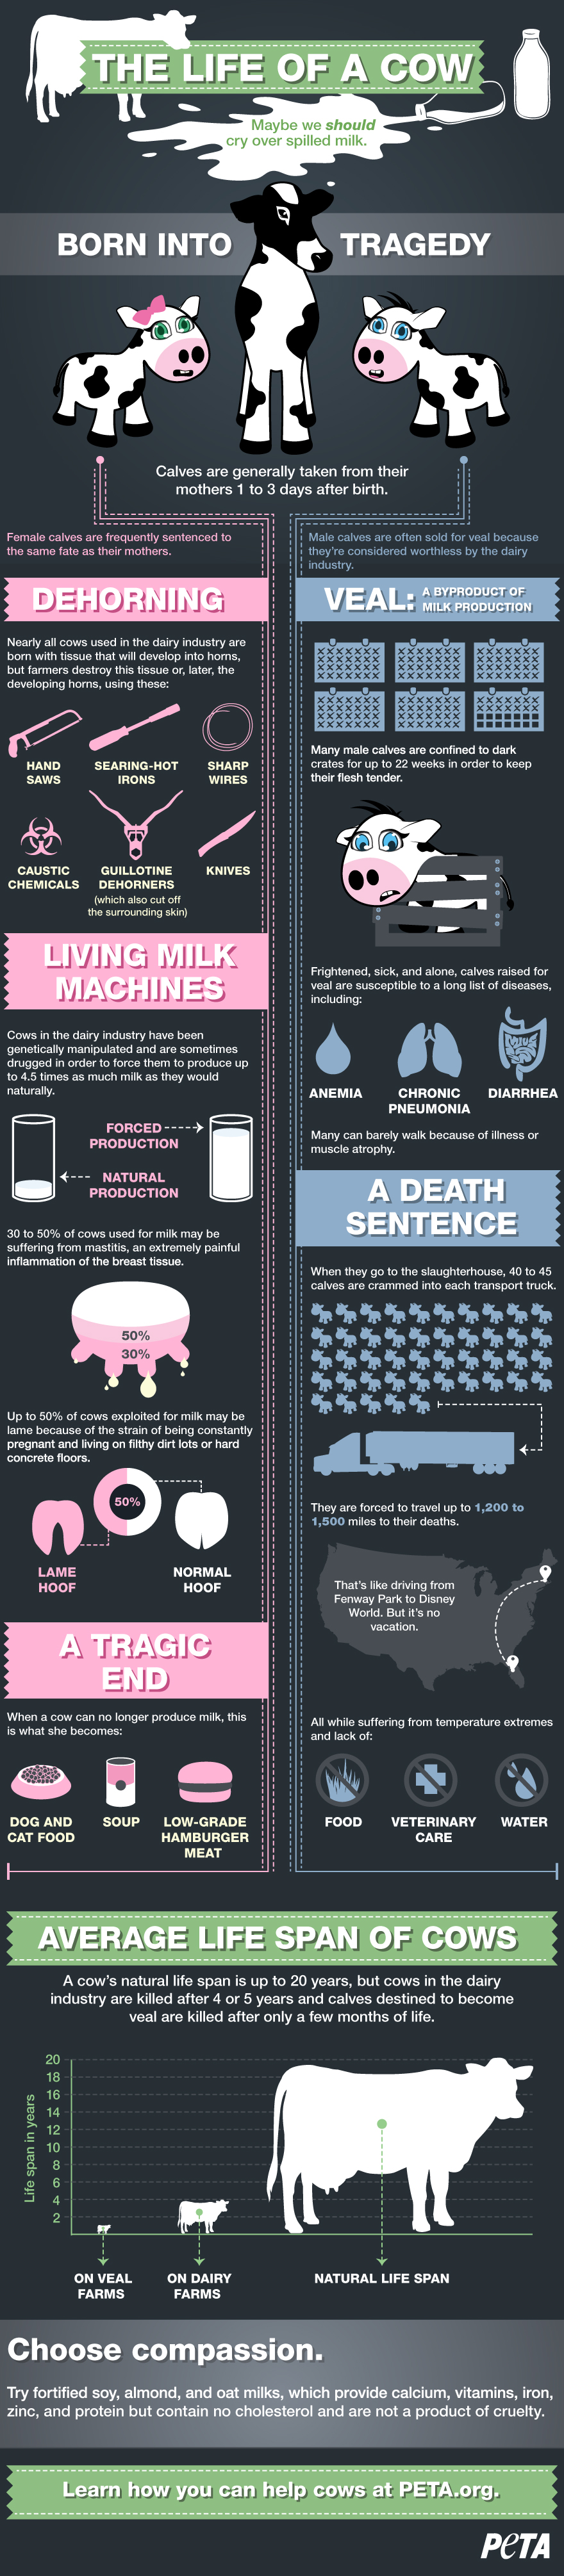 """""""The Life of A Cow (Infographic)"""" by PETA.com"""